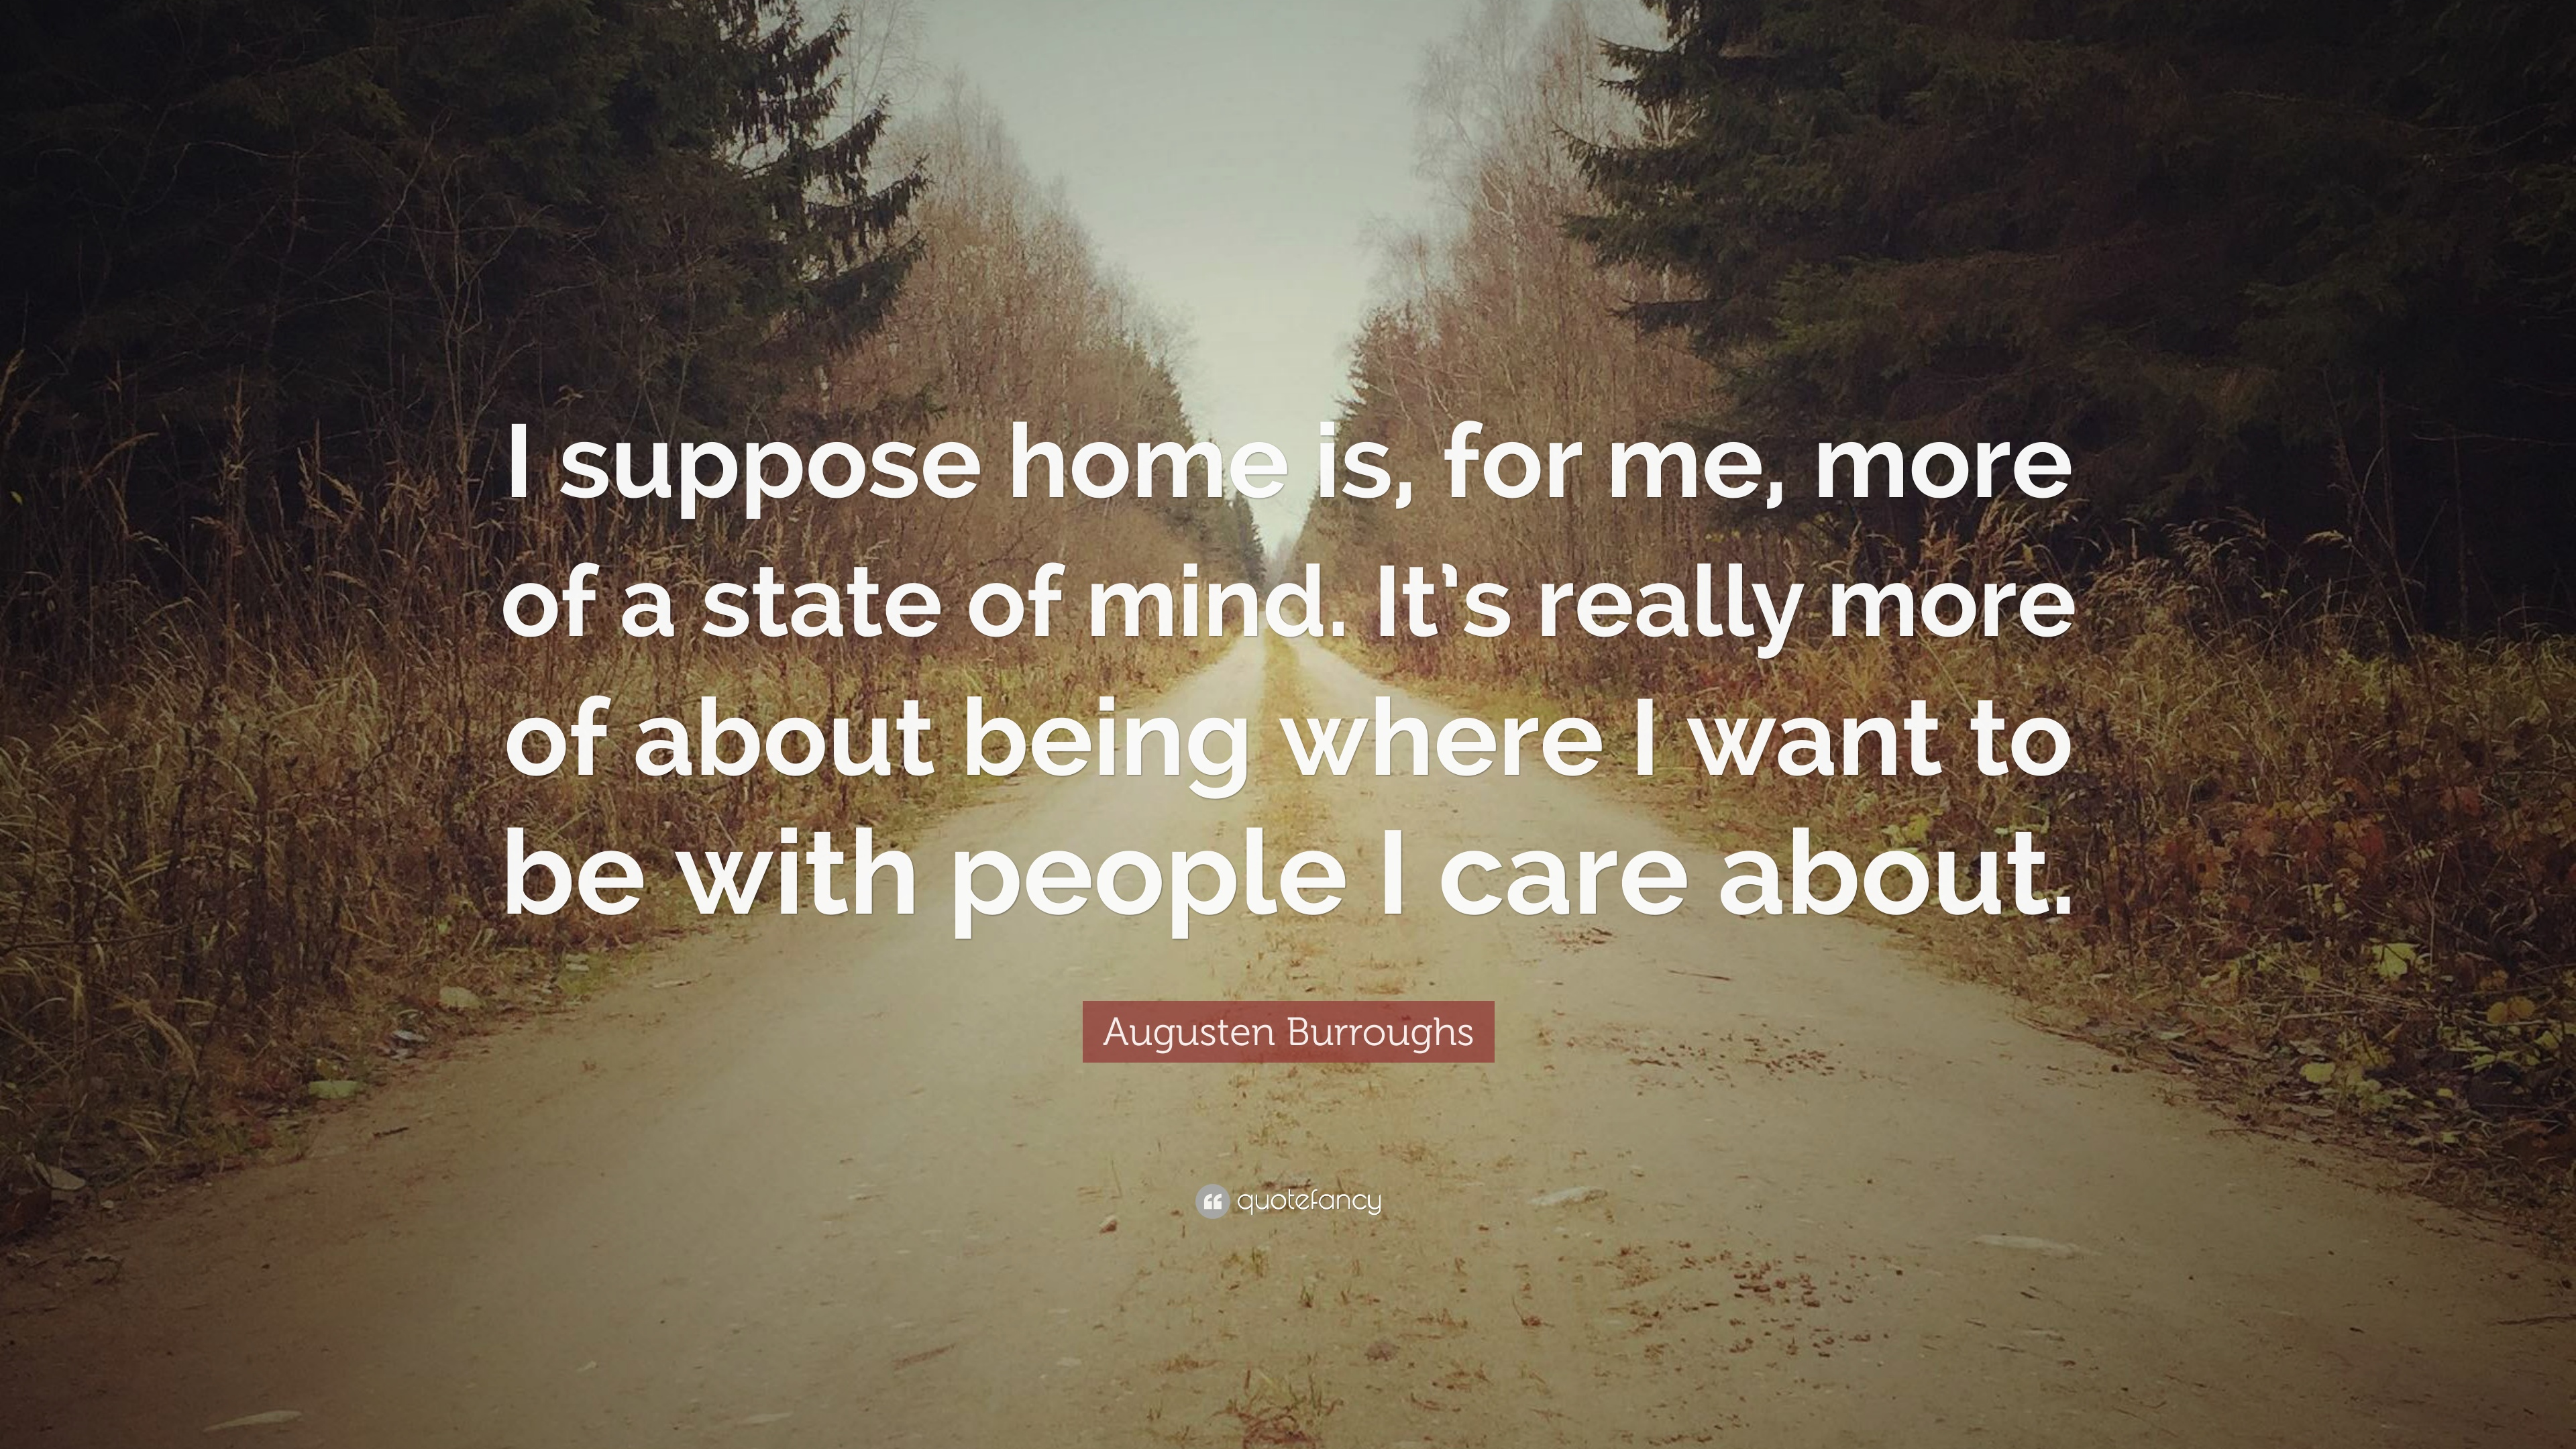 Augusten Burroughs Quote I Suppose Home Is For Me More Of A